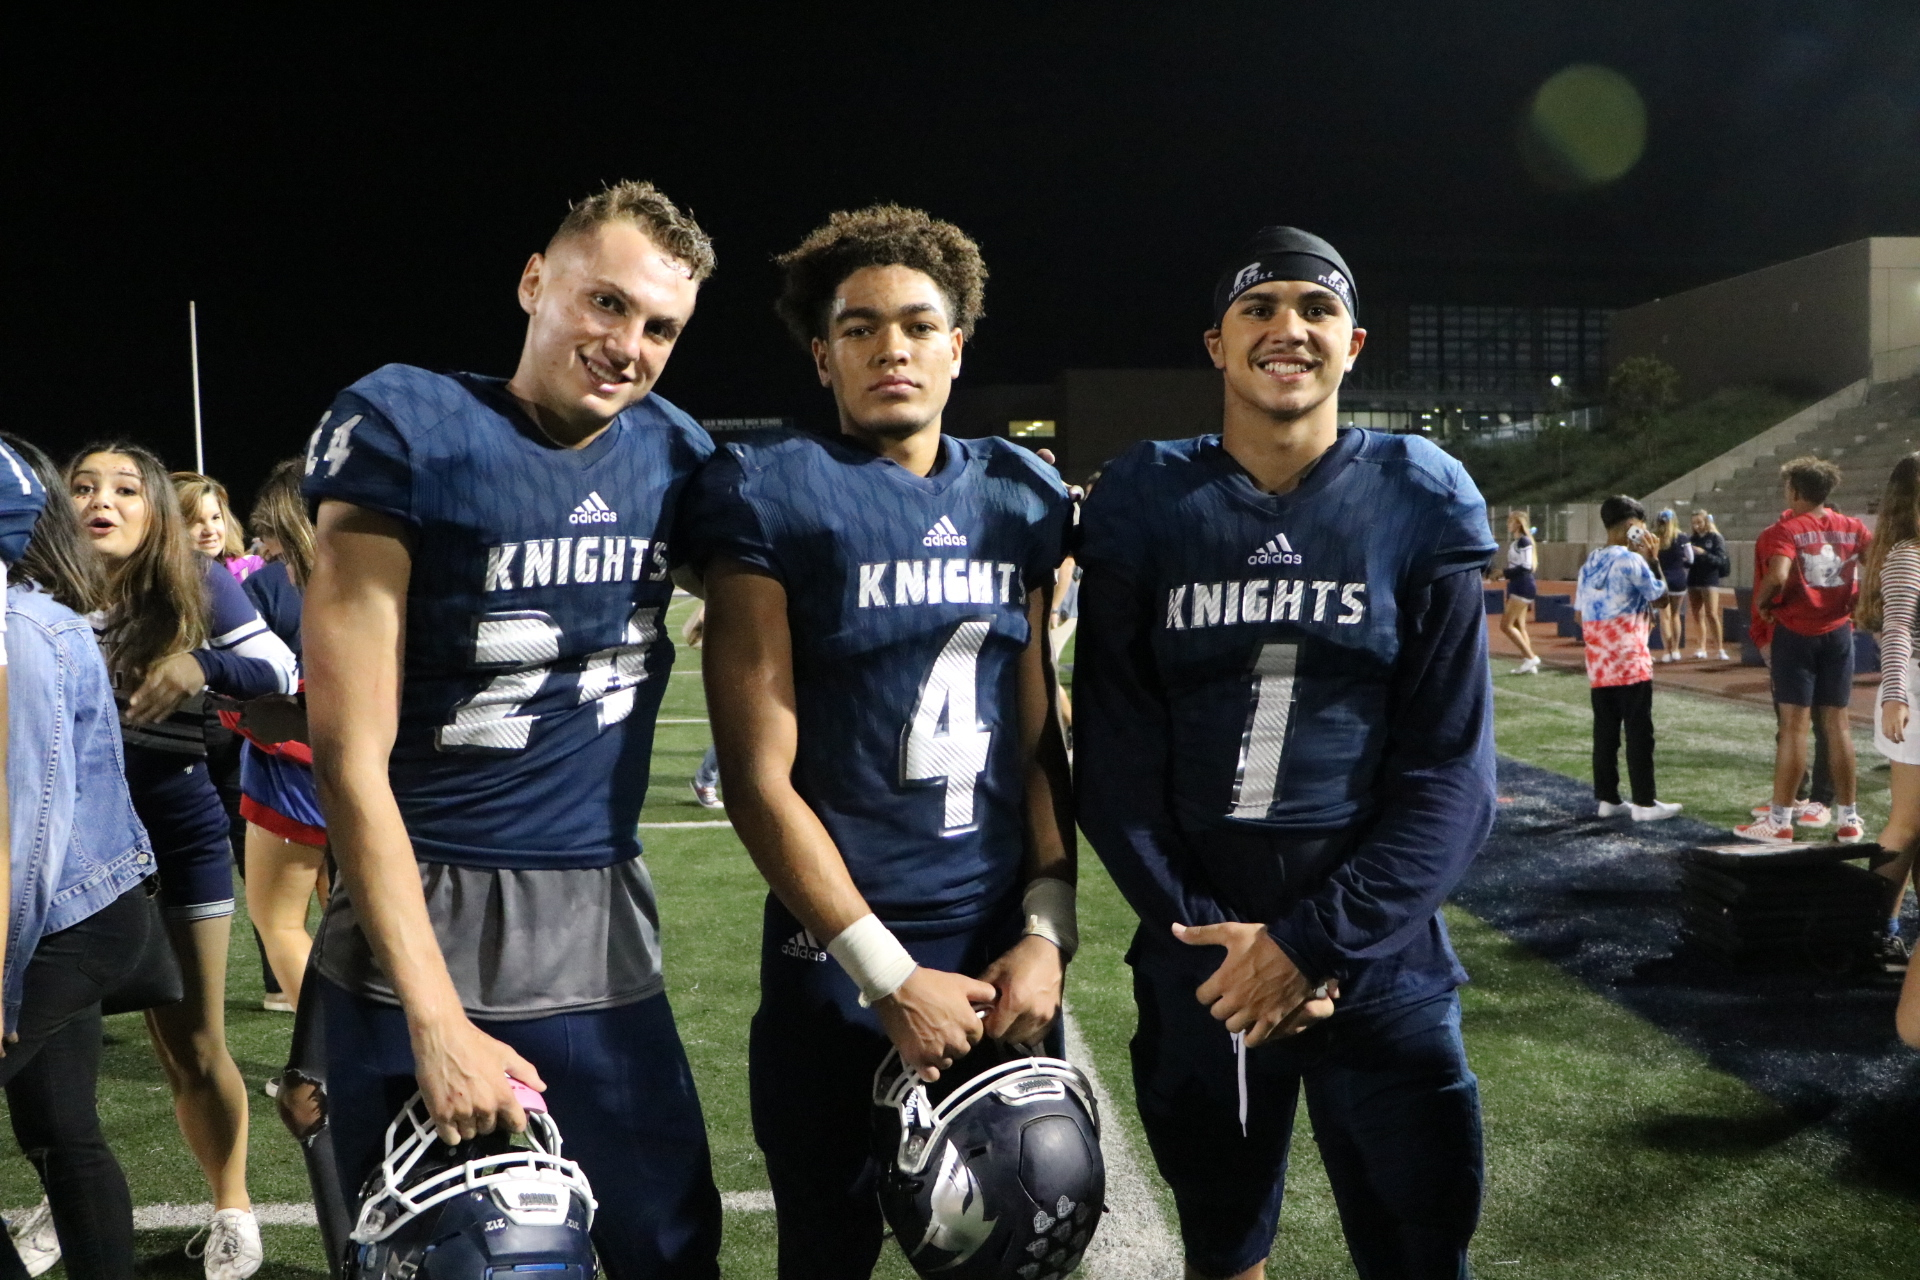 Jalen Bainer's key interception Aaron Norita's 3 yard run paces San Marcos in big win